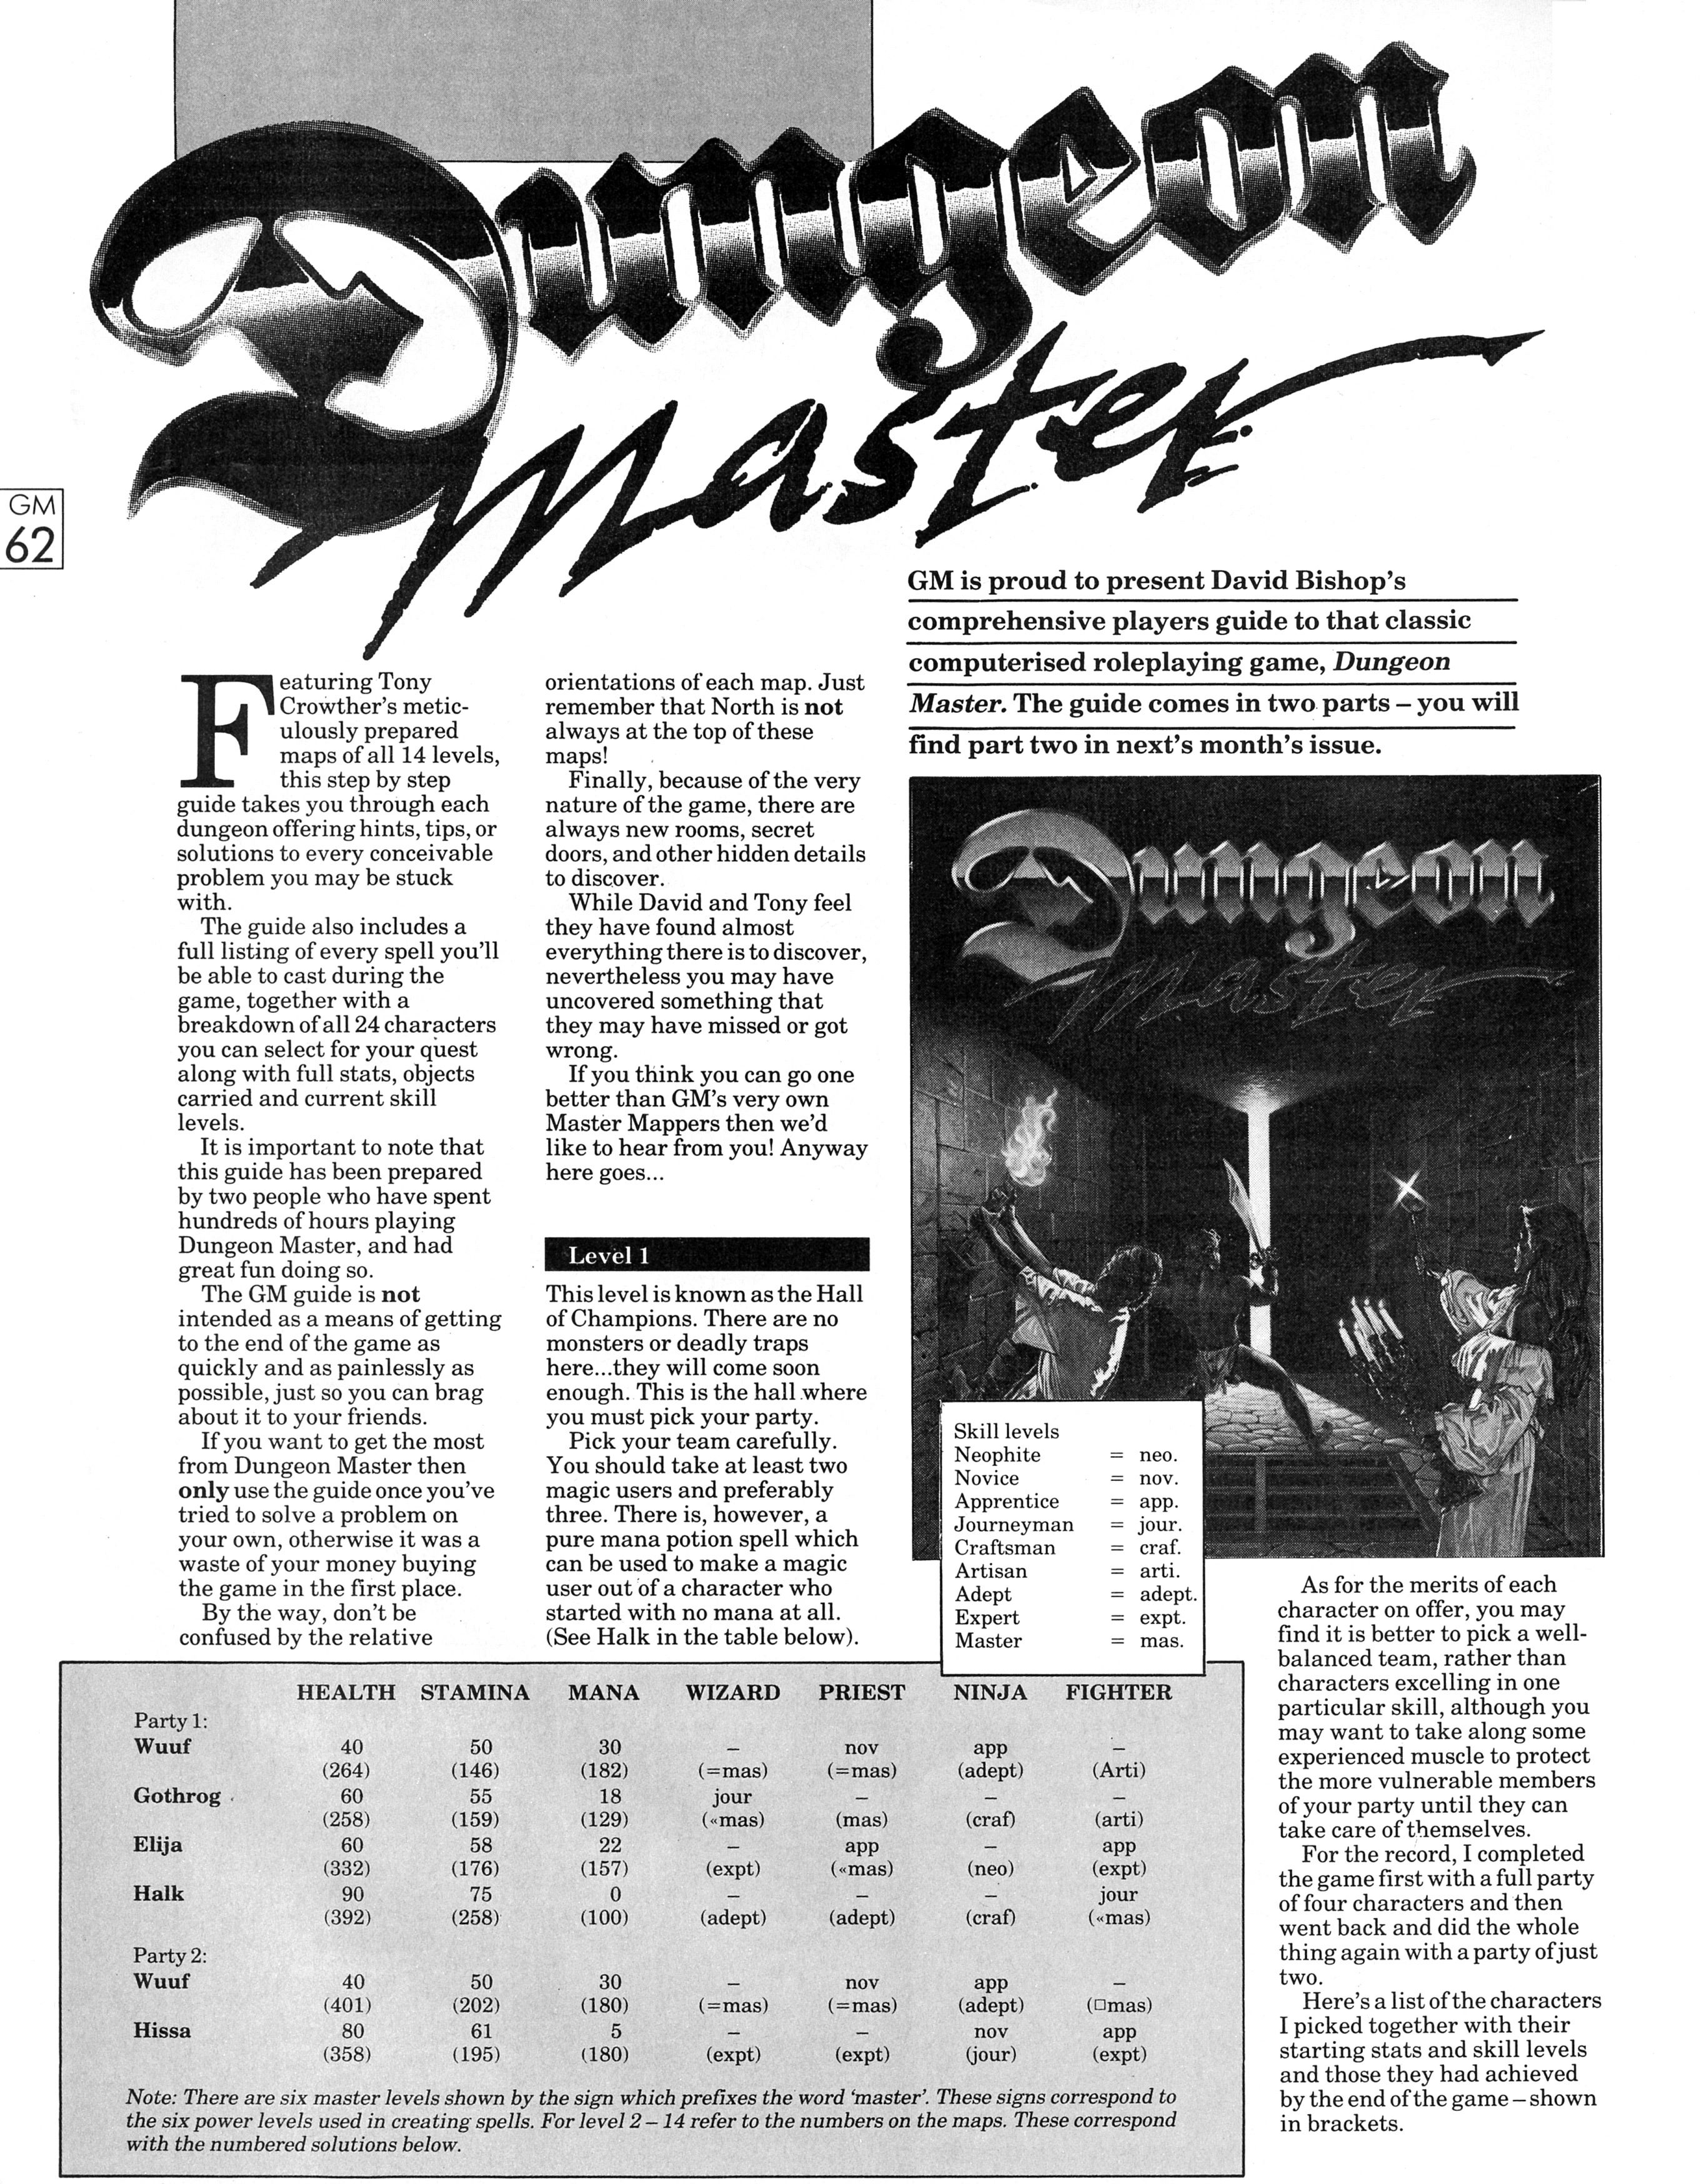 Dungeon Master Guide published in British magazine 'Game Master', Vol 1 No 2 October 1988, Page 62